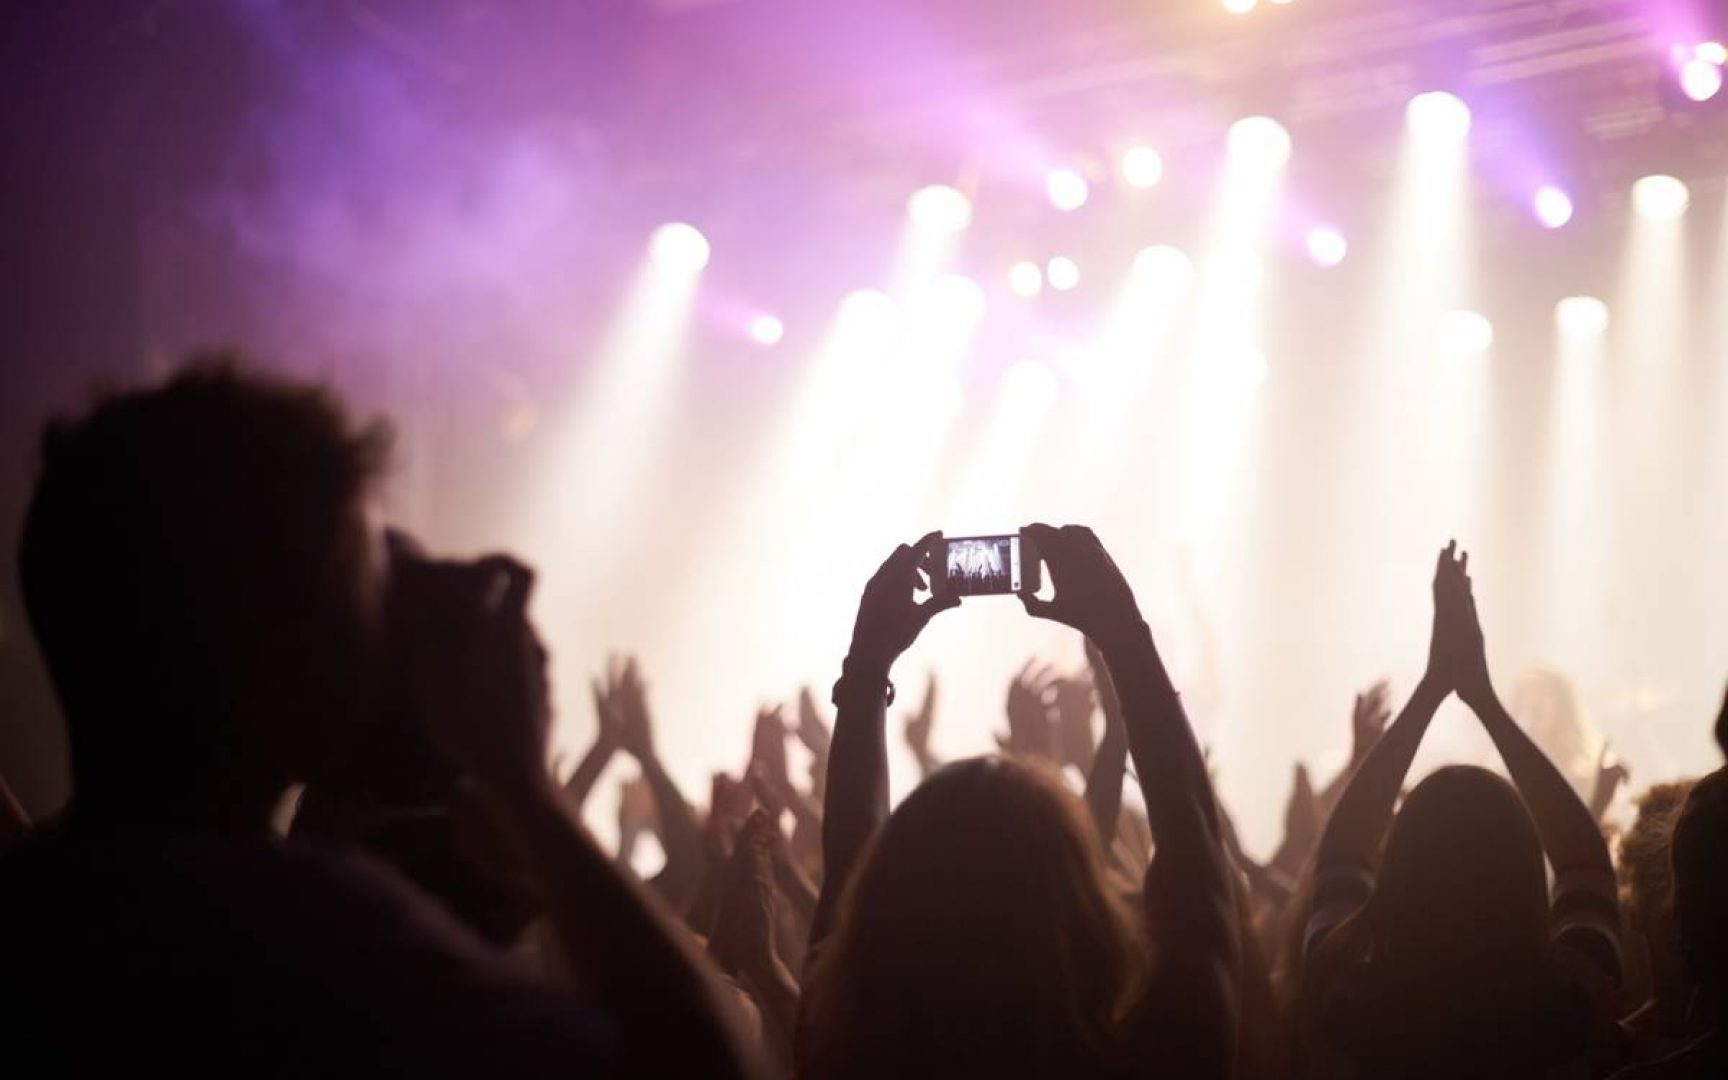 Person standing in a crowd at a concert taking a photo of the stage.